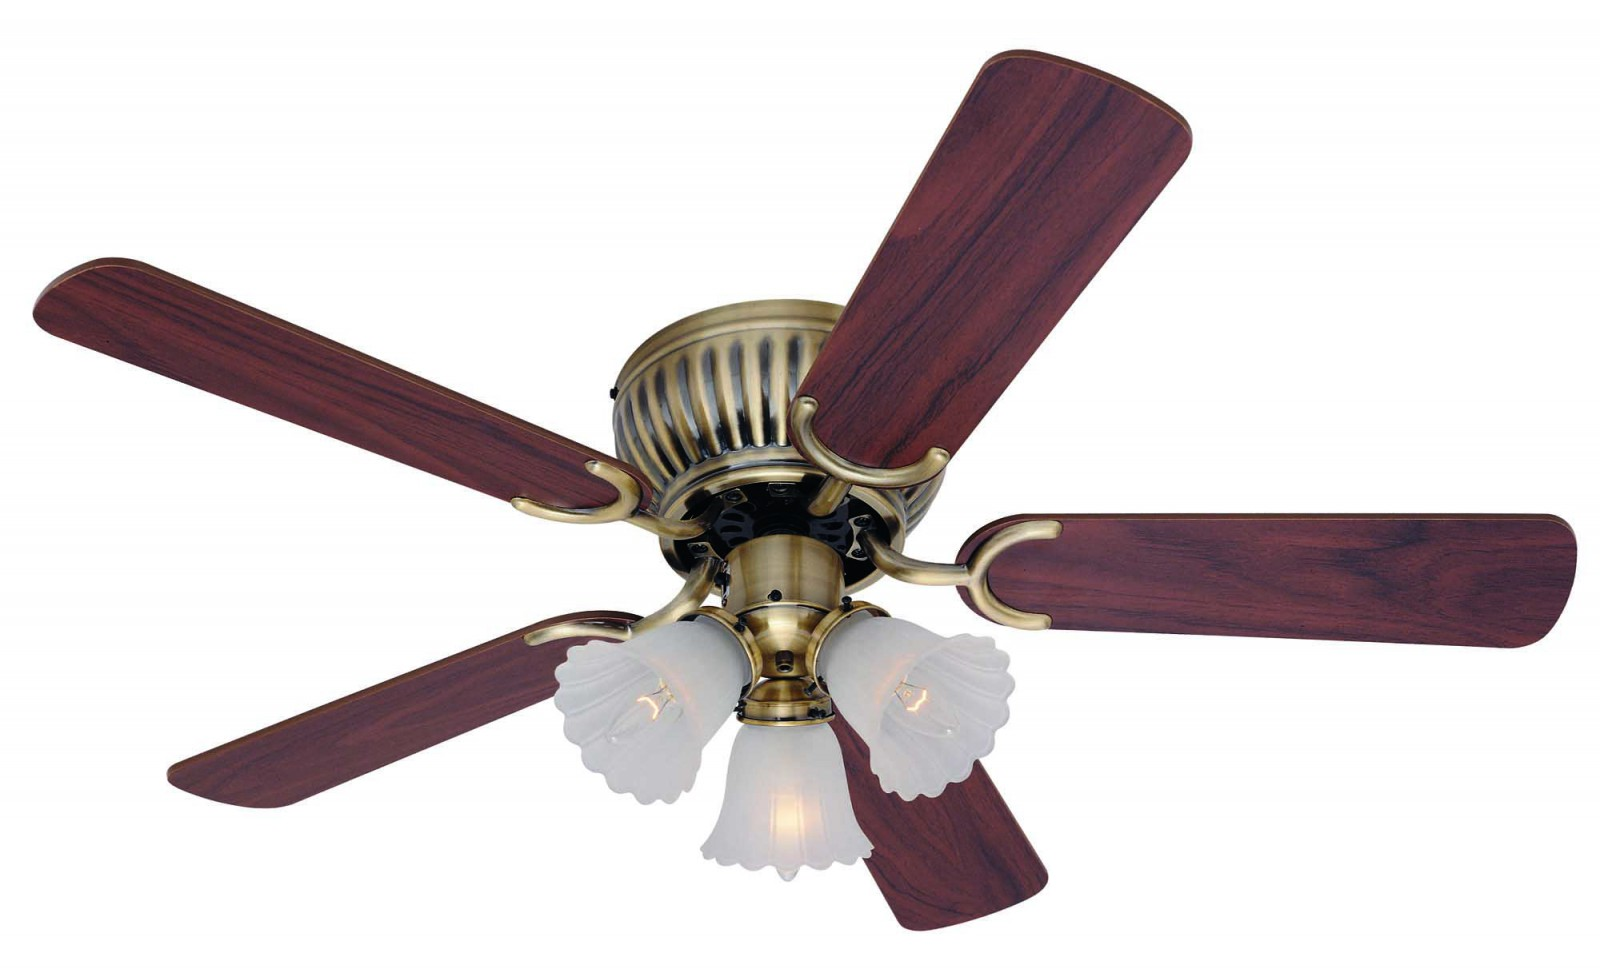 Ceiling Fan Kisa Brass Antique 105 Cm 41 For Low Ceilings